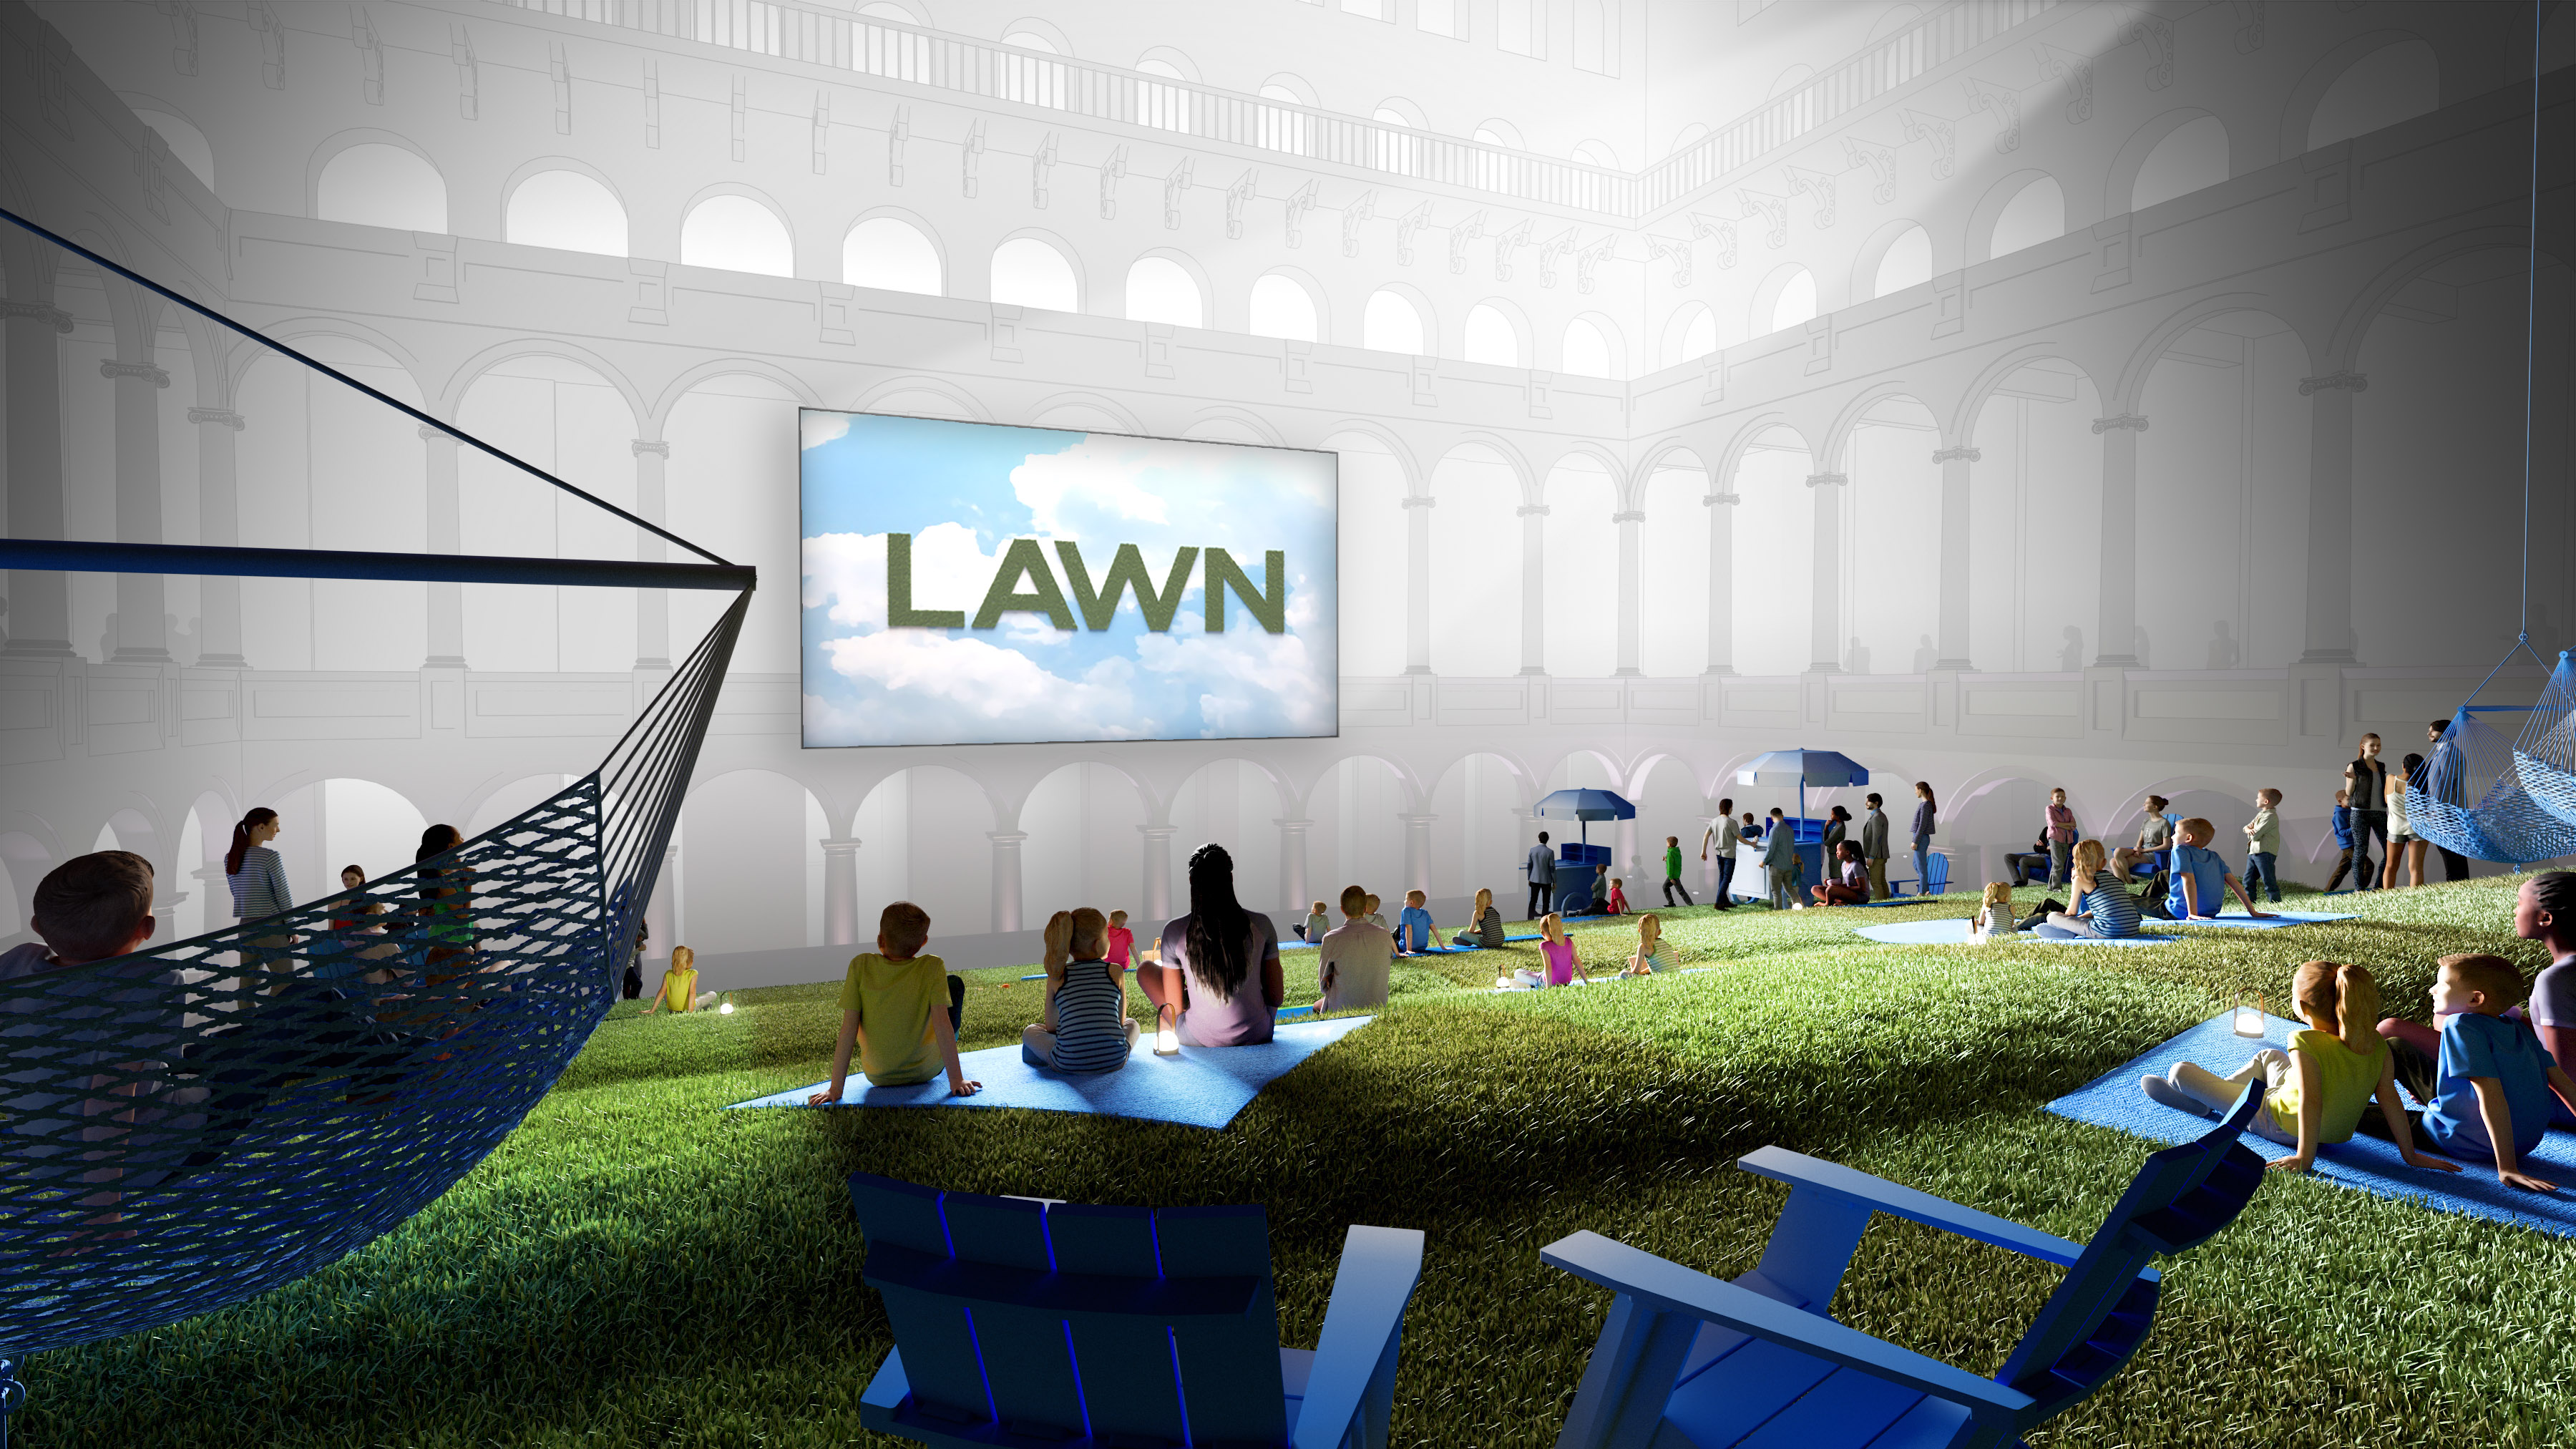 National Building Museum Lawn Exhibit Summer 2019